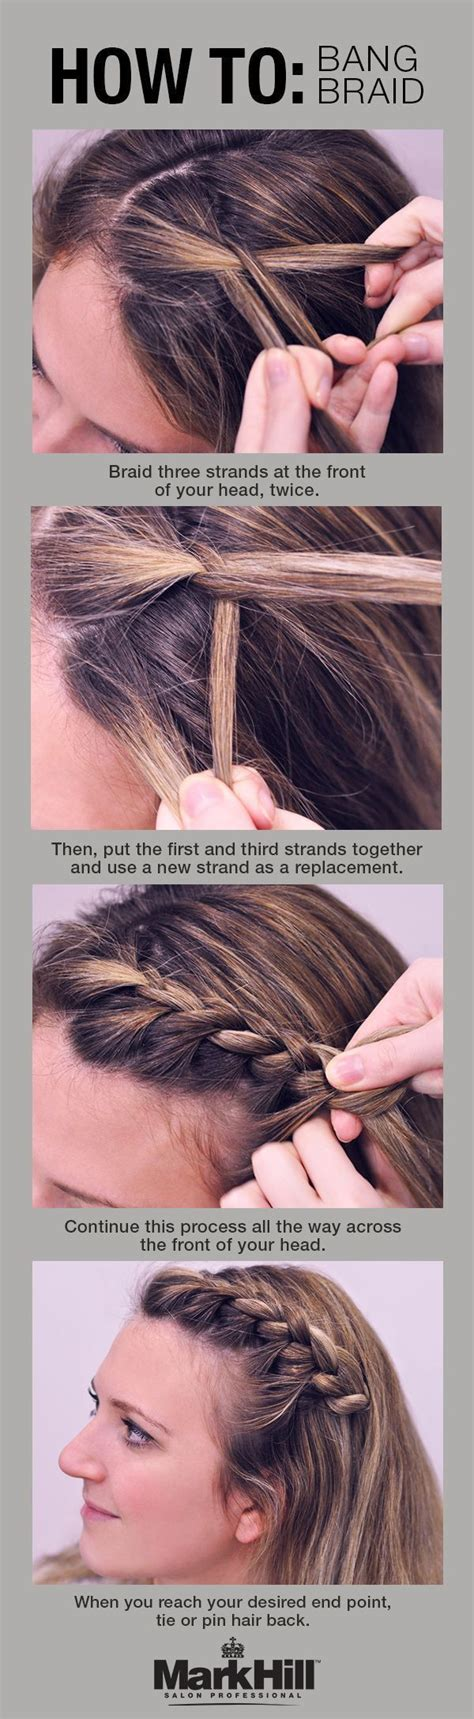 hairstyles to put your bangs back 10 easy hairstyles for bangs to get them out of your face